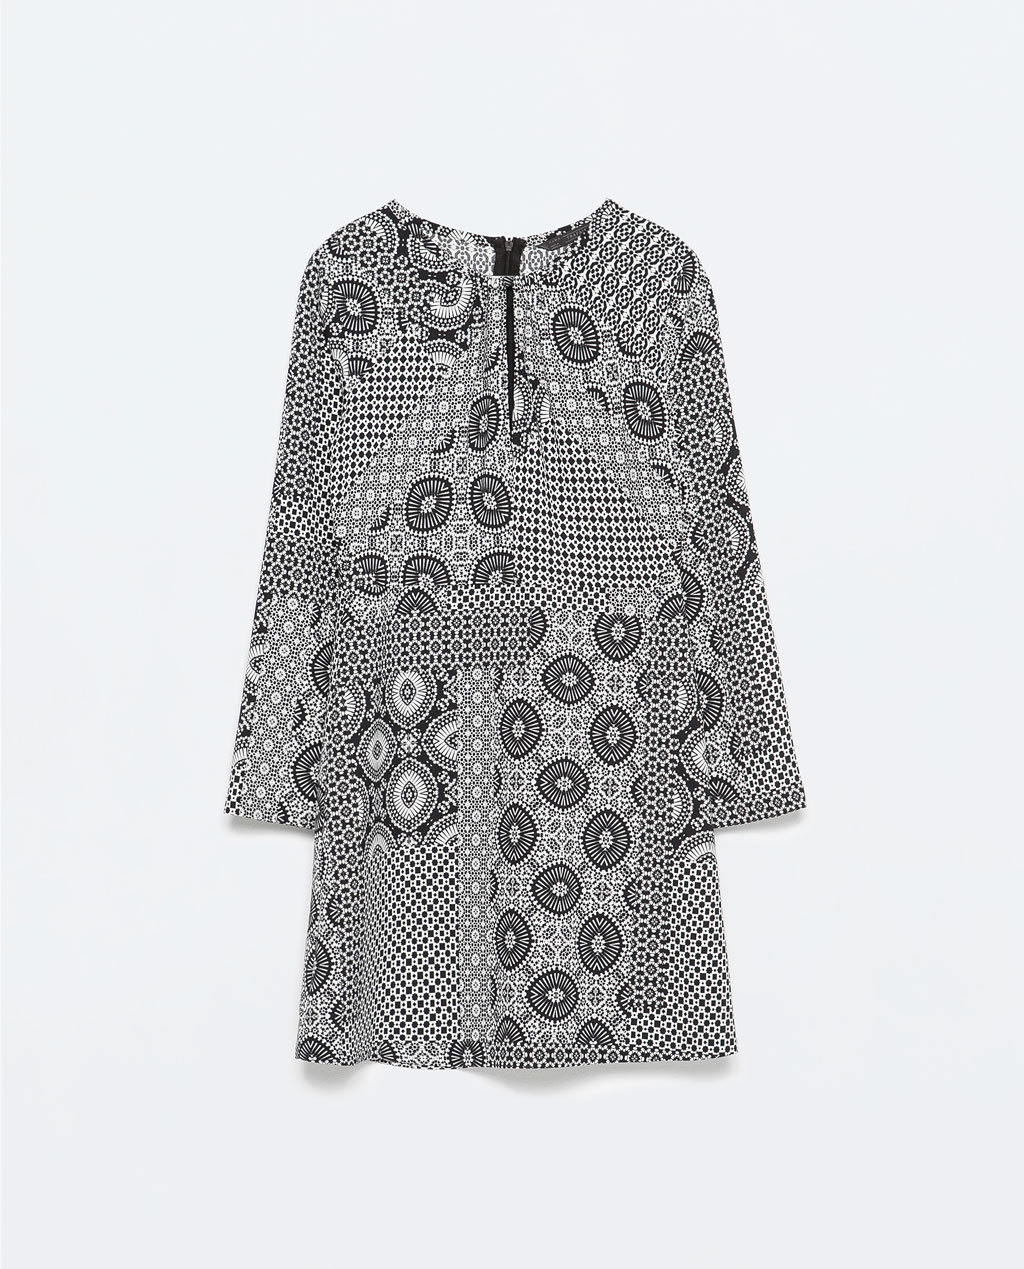 Patchwork Print Dress - style: shift; length: mid thigh; fit: loose; secondary colour: white; predominant colour: black; occasions: casual, creative work; fibres: polyester/polyamide - 100%; neckline: crew; sleeve length: 3/4 length; sleeve style: standard; texture group: crepes; pattern type: fabric; pattern size: standard; pattern: patterned/print; season: s/s 2015; wardrobe: highlight